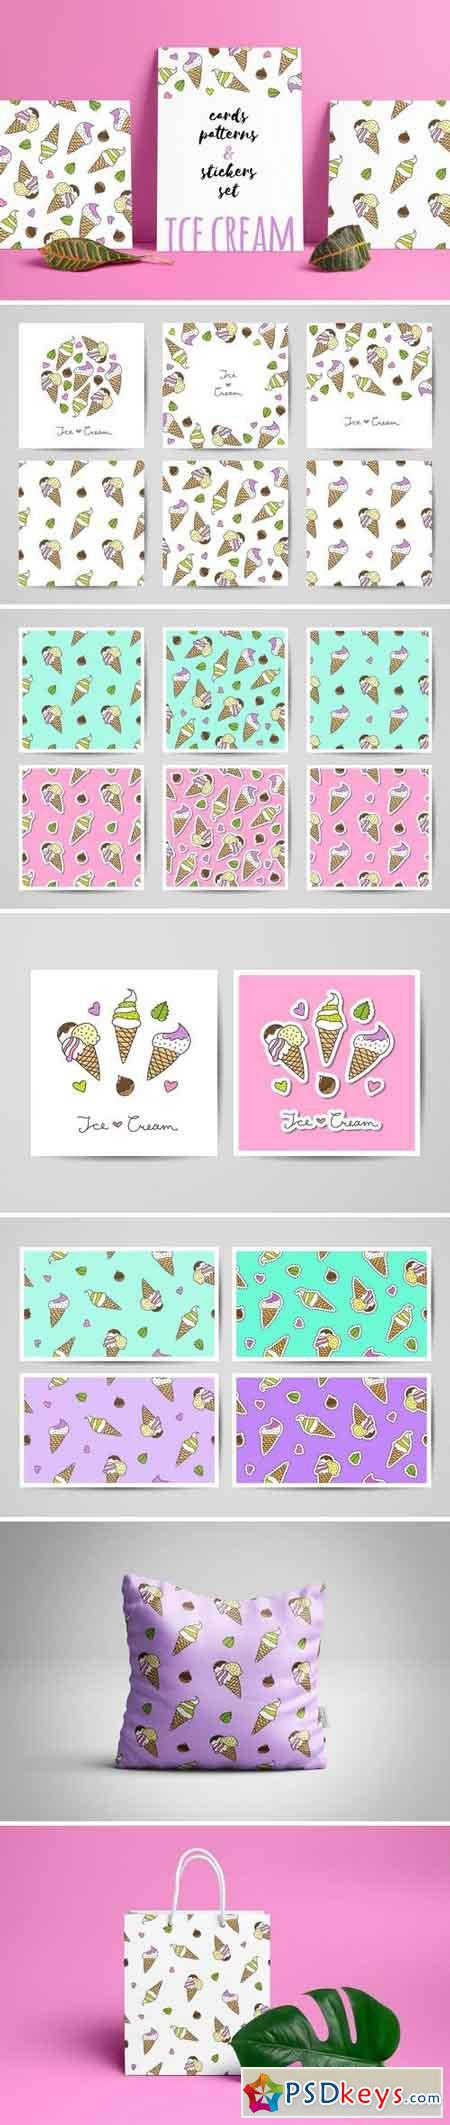 Ice Cream patterns and cards 1521110